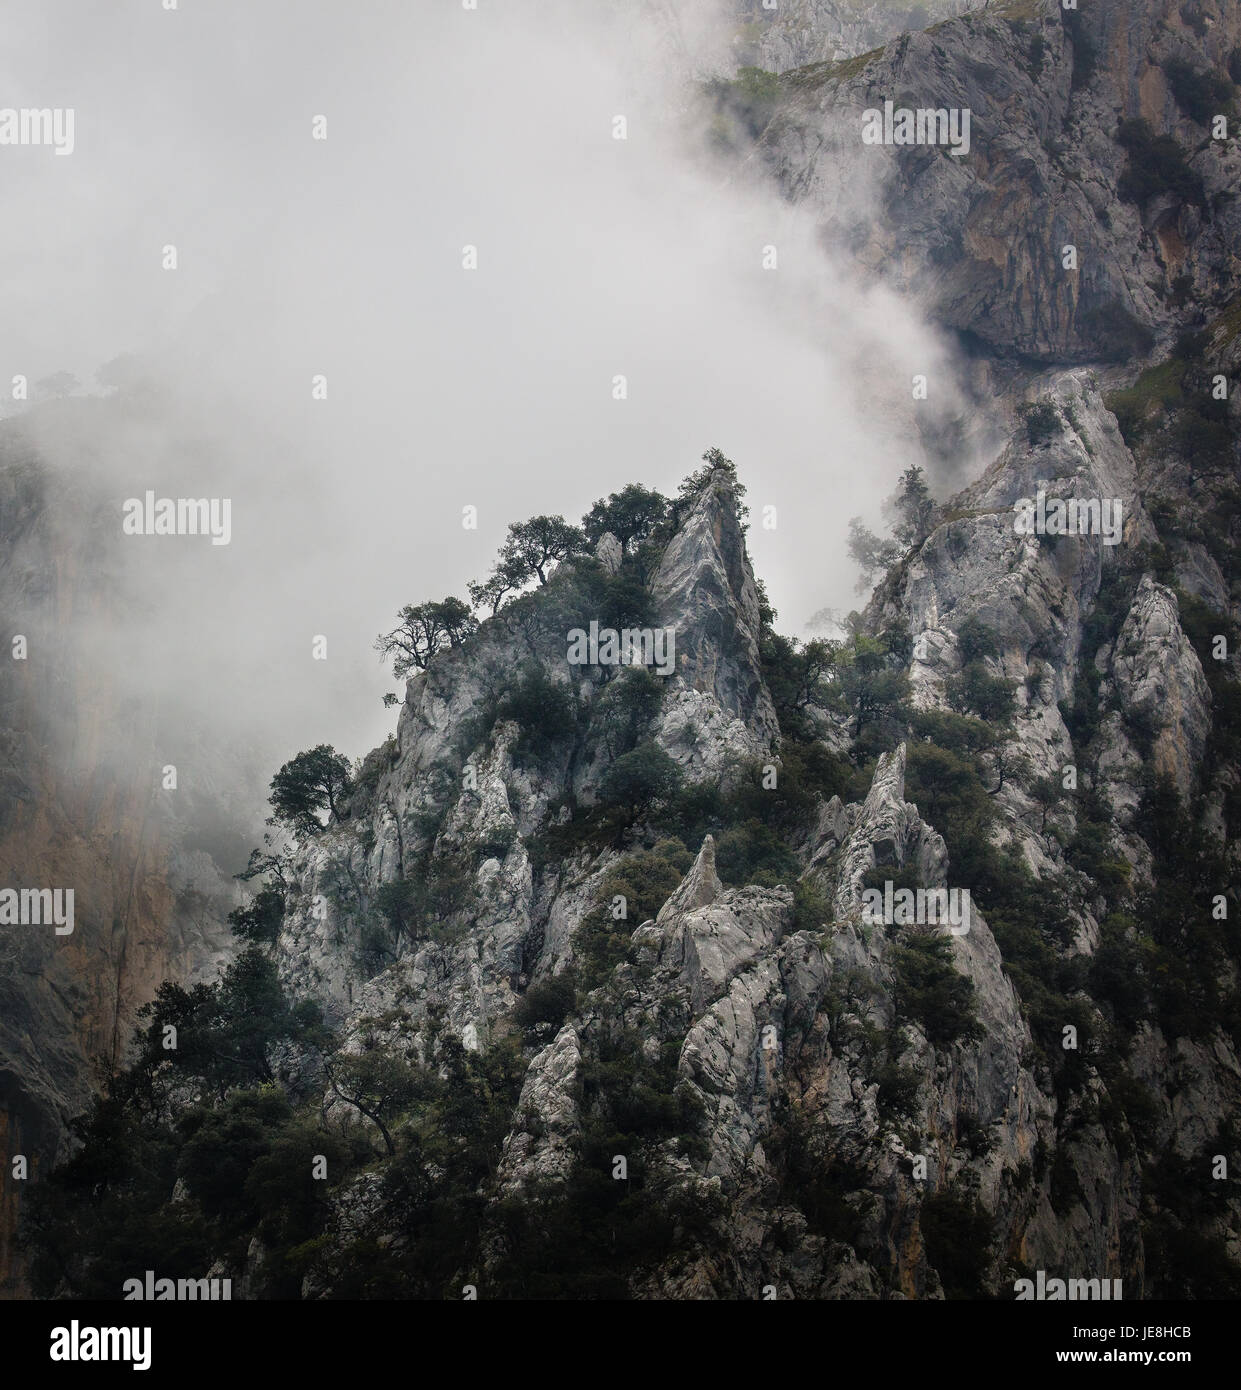 Low cloud and mist swirling round limestone peaks of the Cares Gorge in the Picos de Europa in Northern Spain - Stock Image